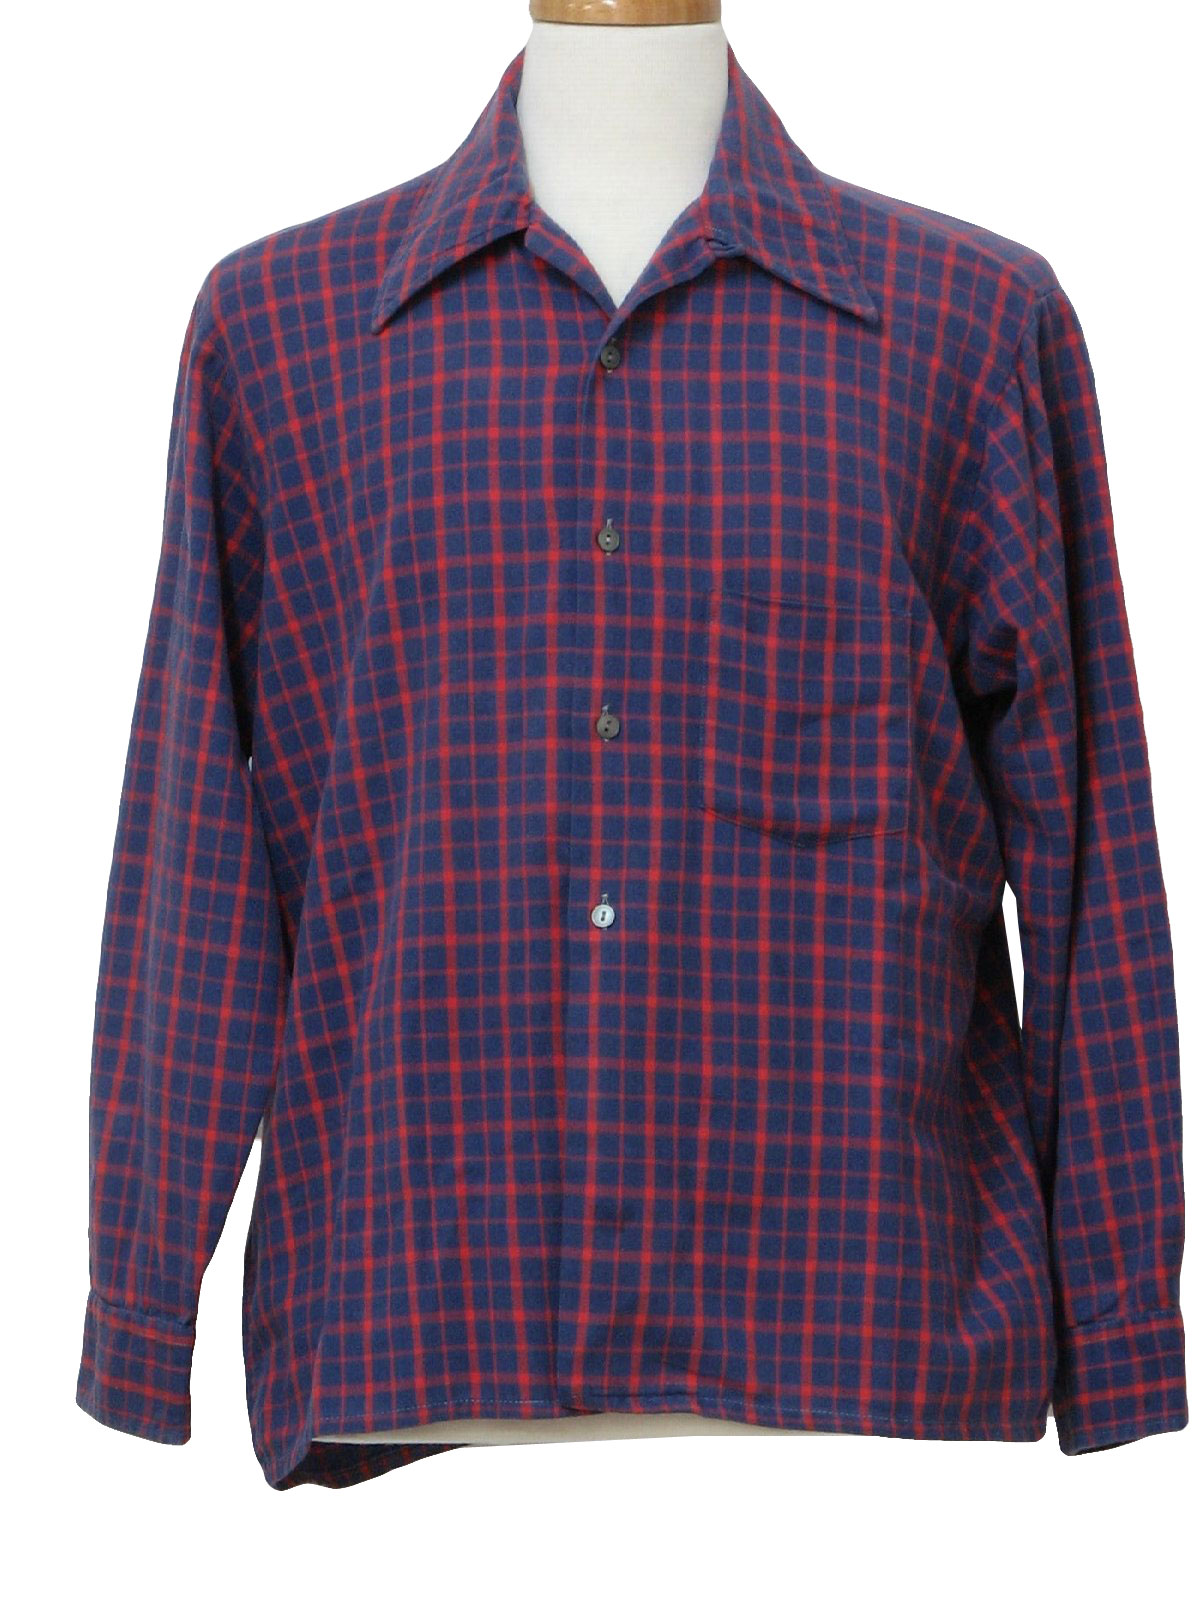 Vintage 1960 39 s shirt late 60s towncraft jc penney mens for Sports shirts near me